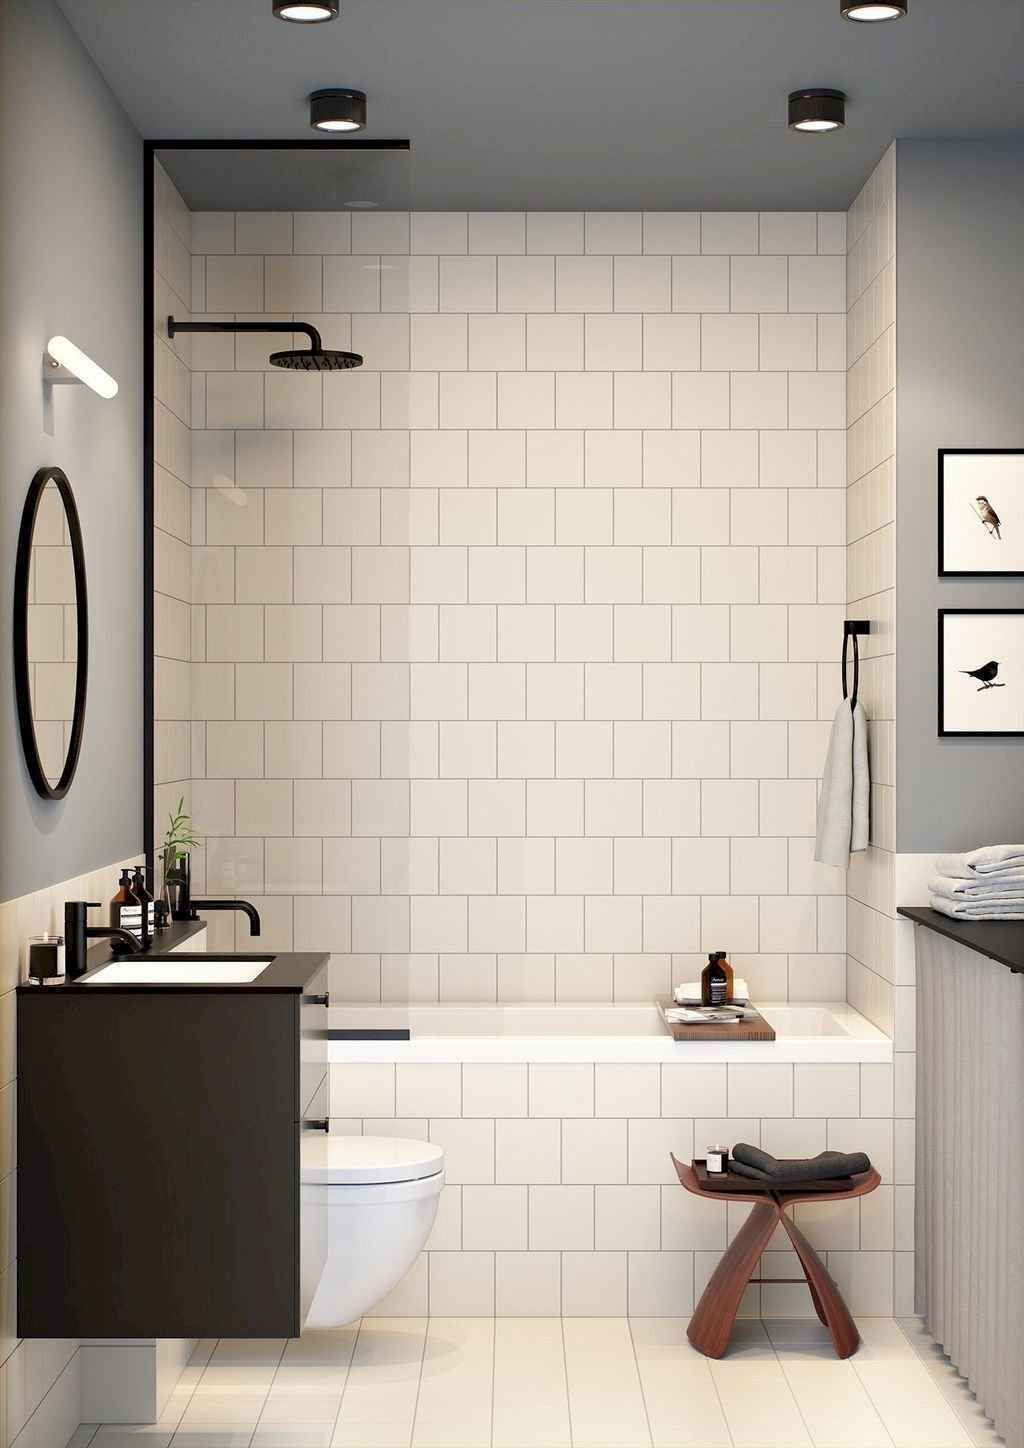 Awesome 80 Cool Bathroom Shower Makeover Ideas Source Link Https Decortutor Com 441 Toilet And Bathroom Design Small Bathroom Bathroom Design Small Modern